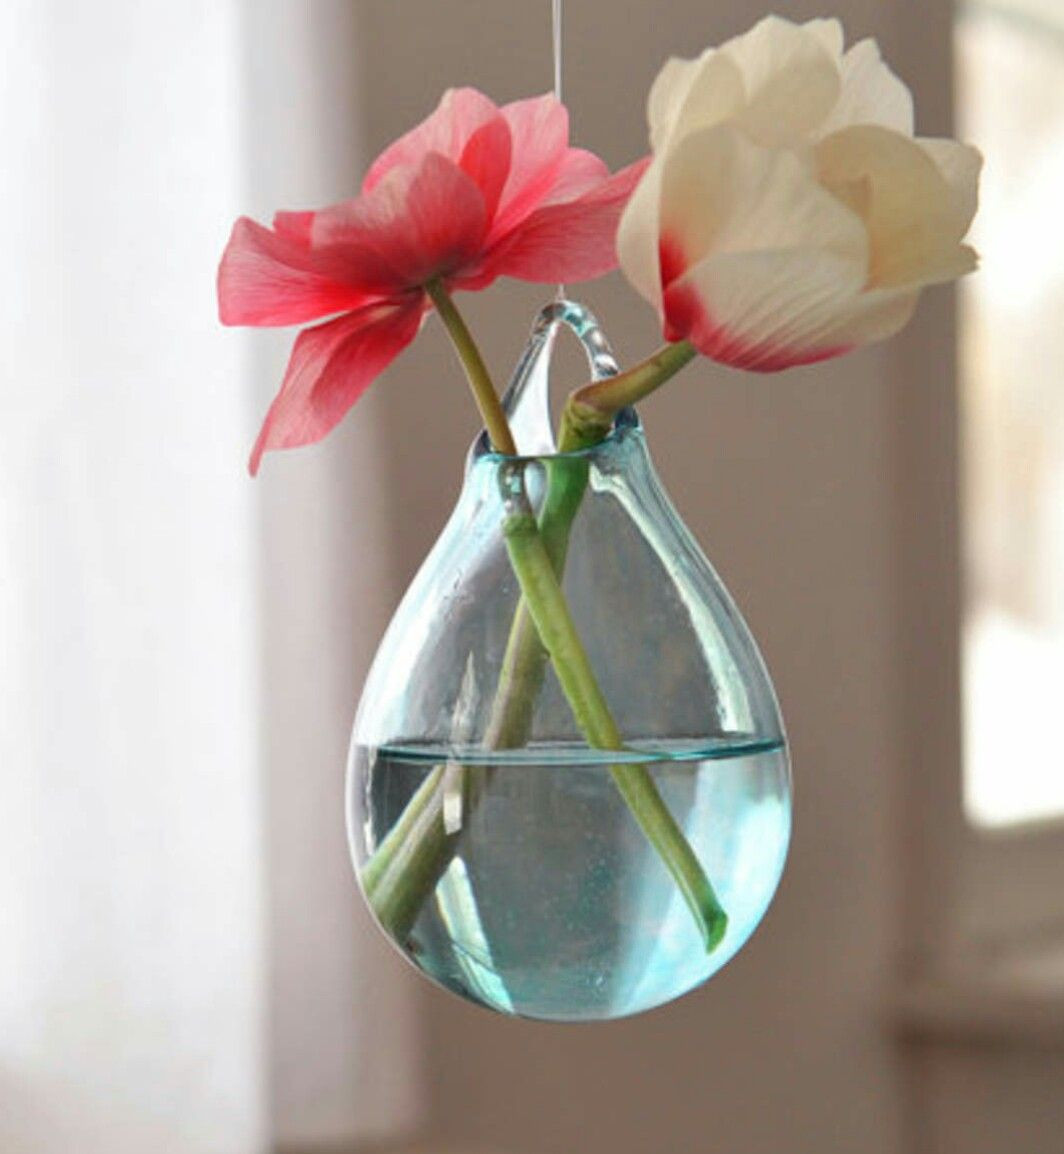 18 Ideal Handmade Wall Hanging Vase